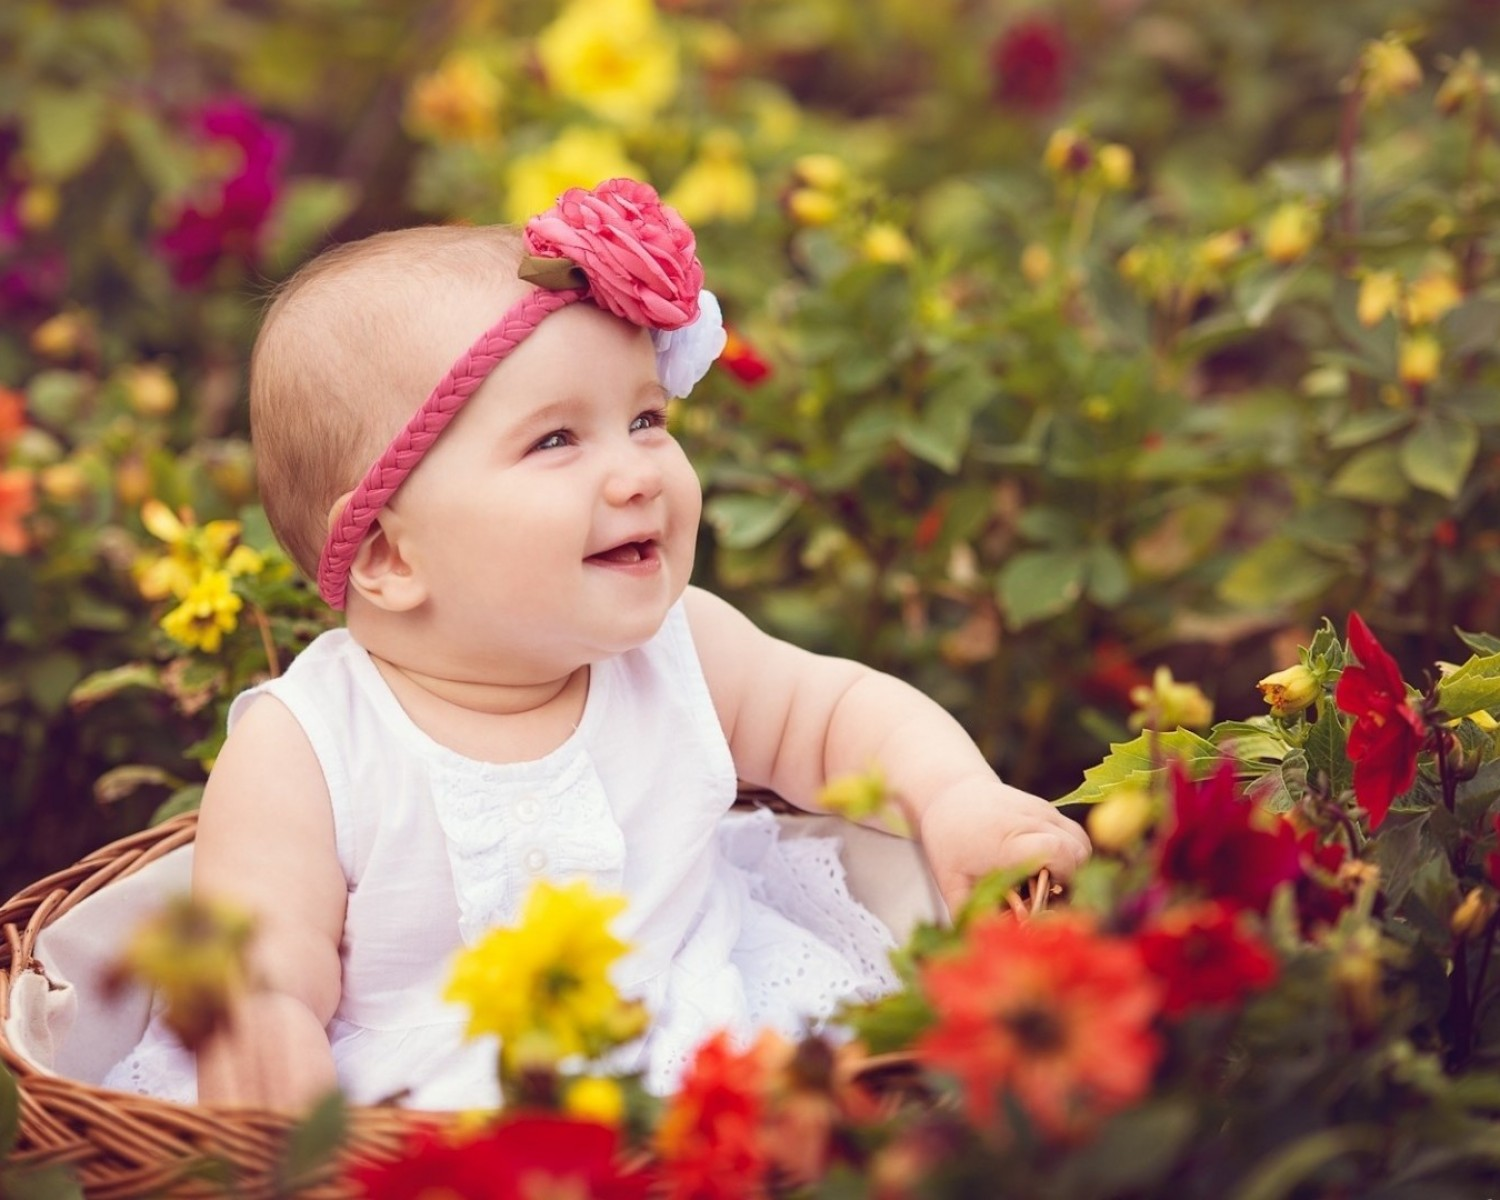 Child Images Wallpaper Baby Whatsapp Dp For Girl 763241 Hd Wallpaper Backgrounds Download